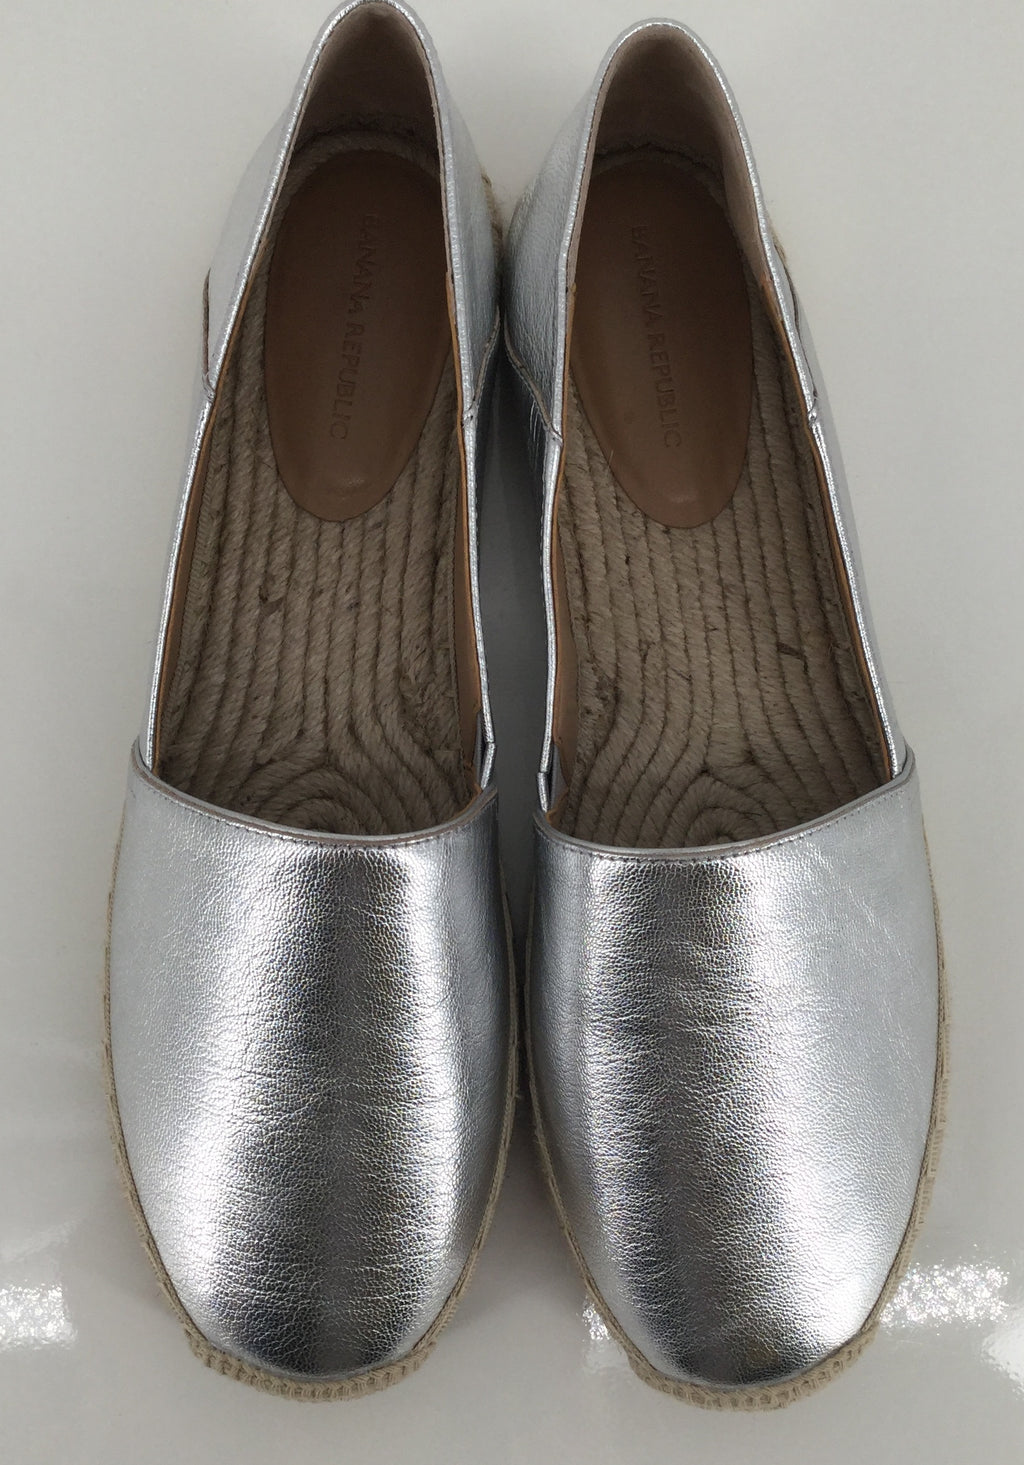 Banana Republic Metallic Silver Flats Size 9.5